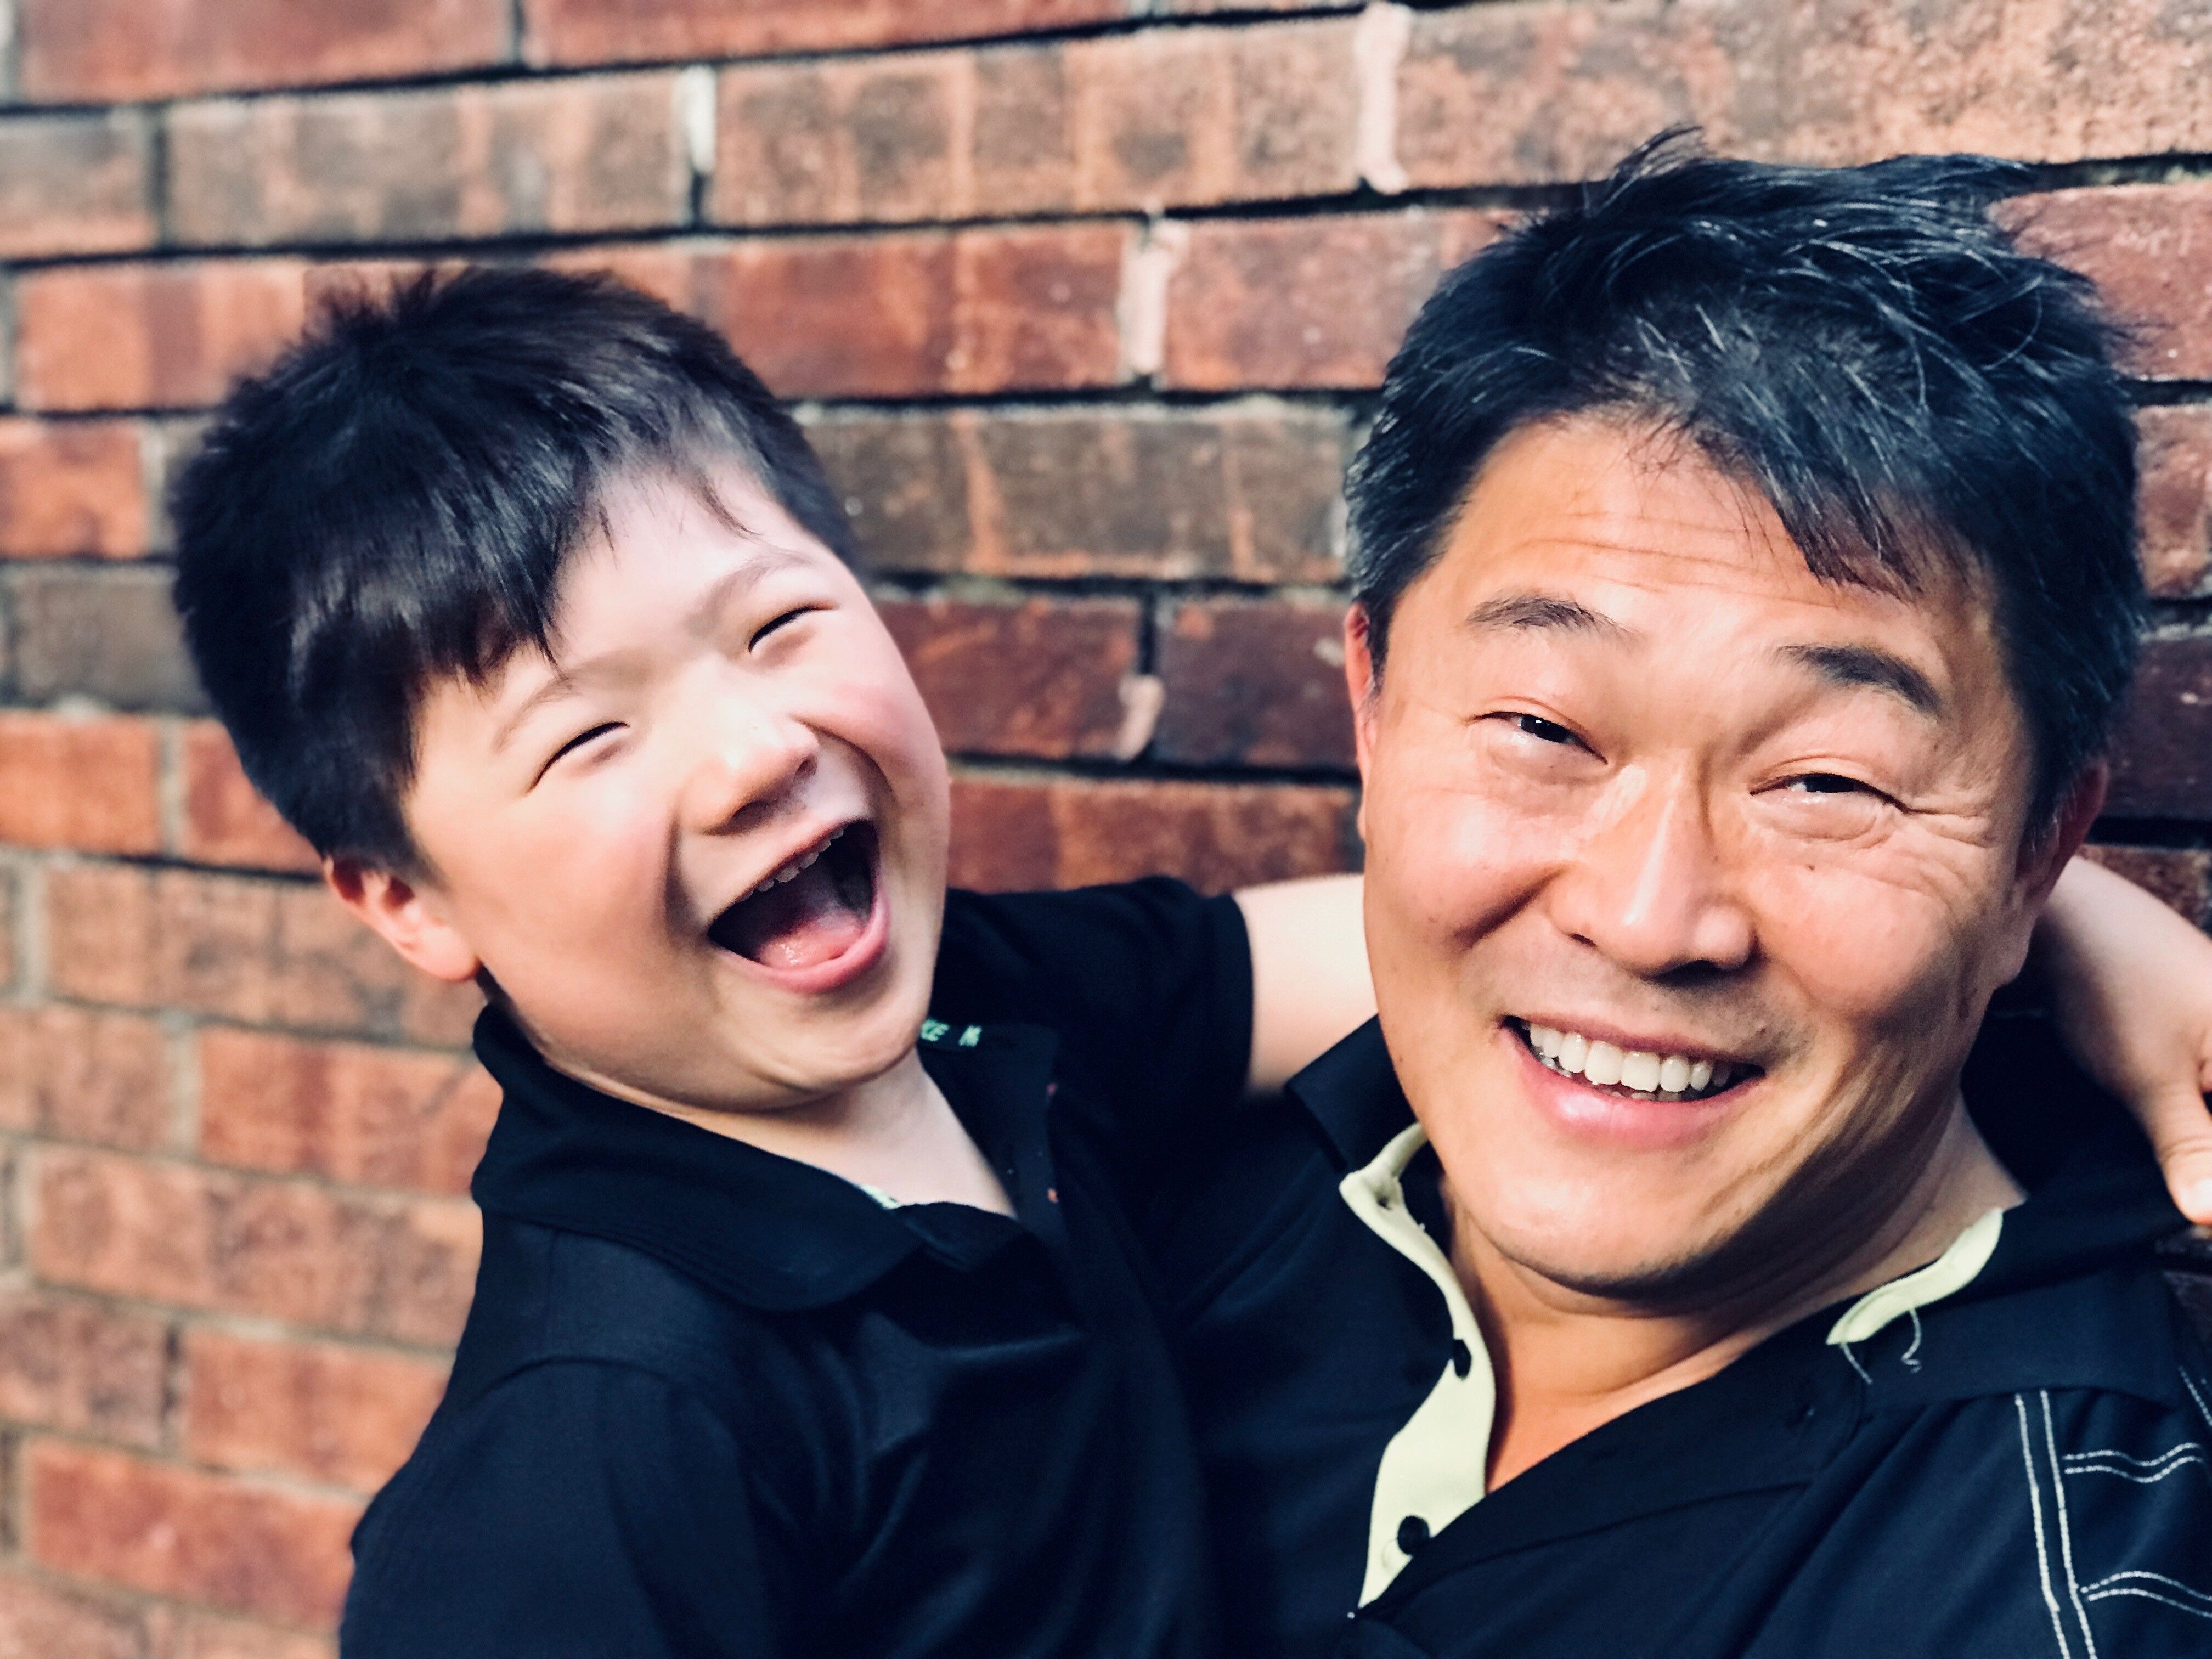 A dad as well as a theatre professional, Chil Kong looks forward to bringing his wife and son to Montgomery County, not far from where he grew up.